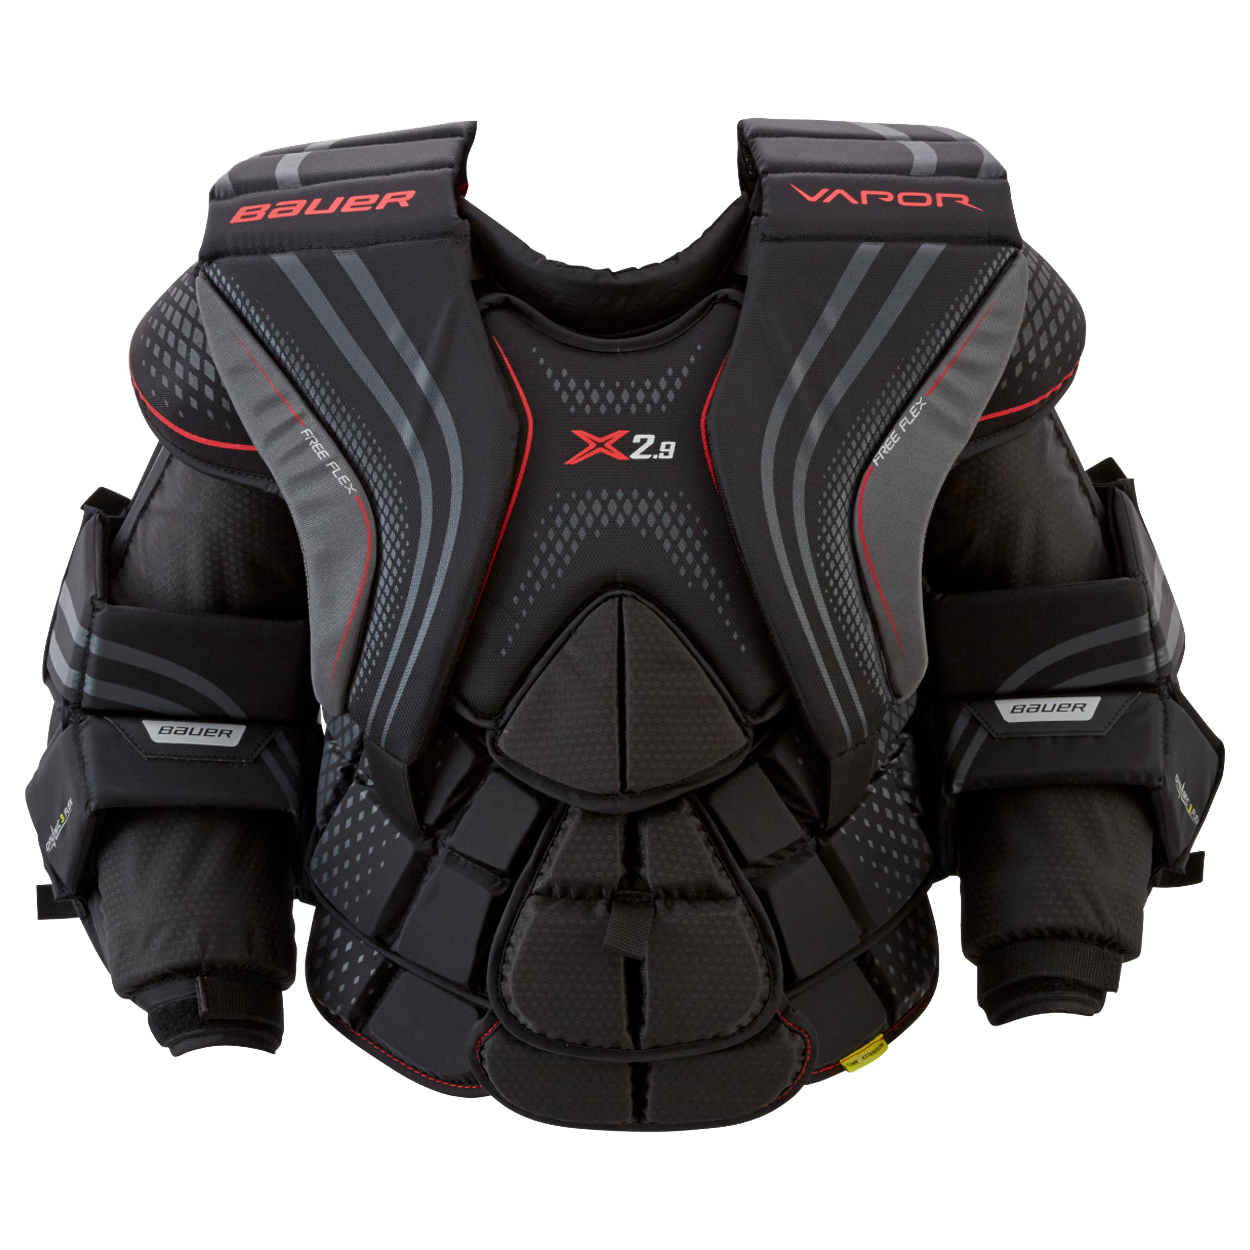 Vapor X2.9 Chest Protector Intermediate